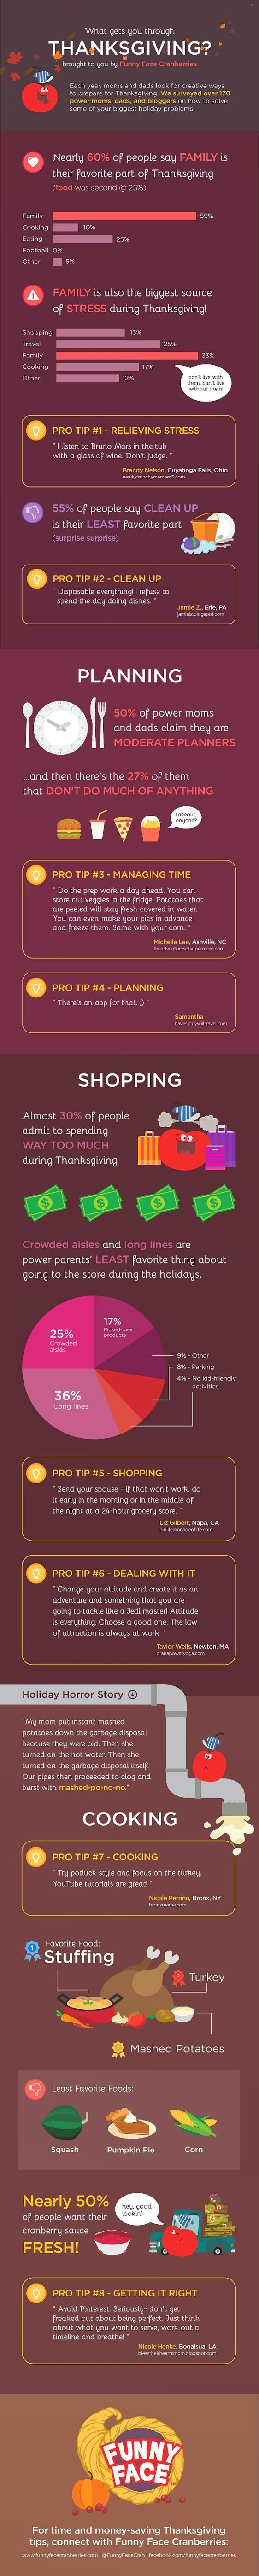 funny face thanksgiving infographic